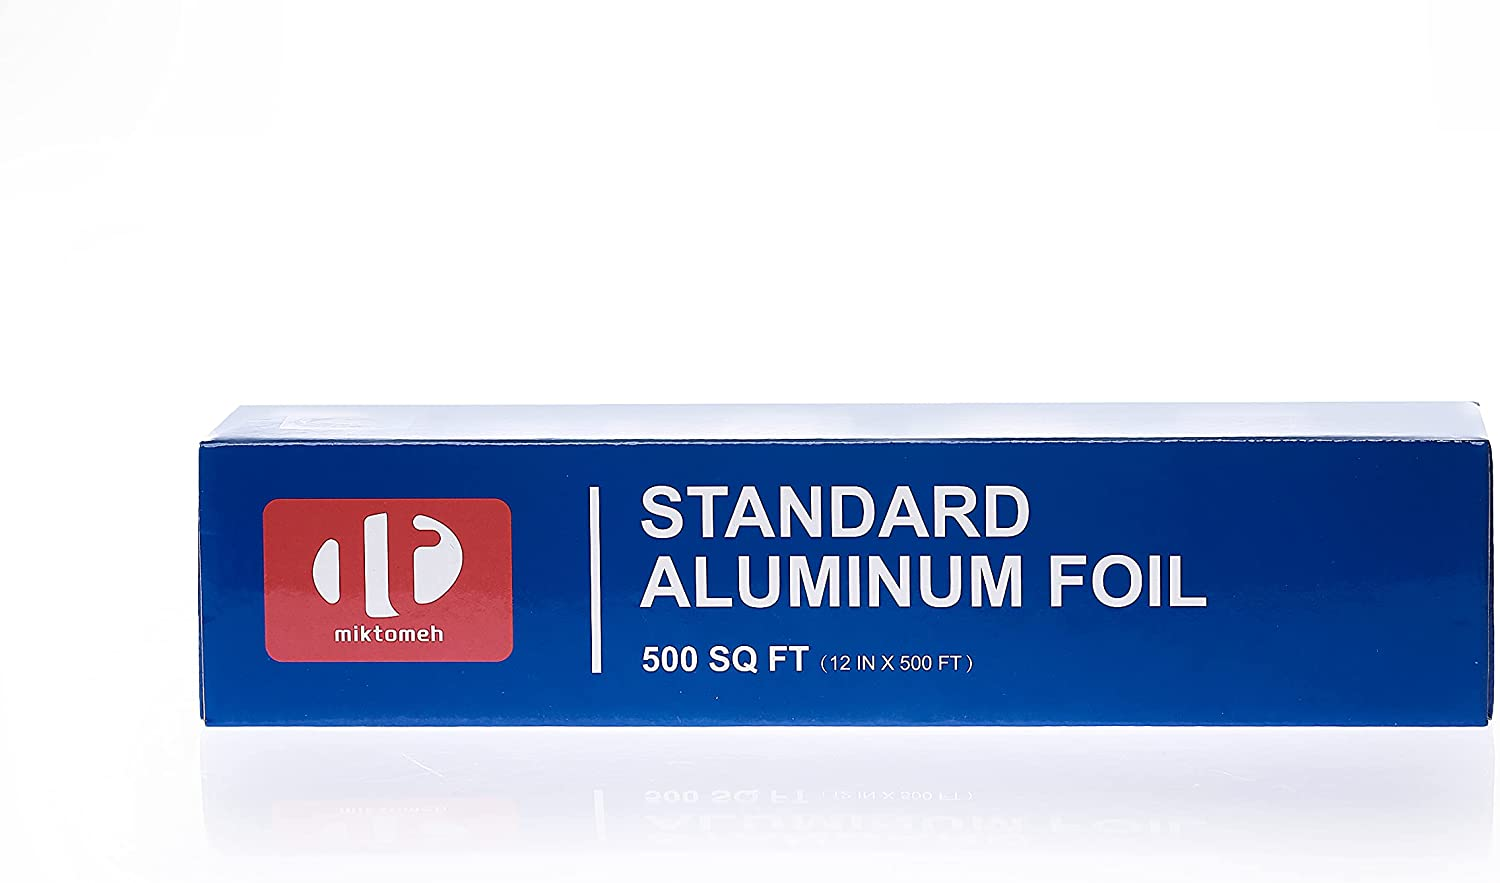 Standard New mail order Safety and trust Aluminum Foil Grilling 500 12 inches SQ FT x